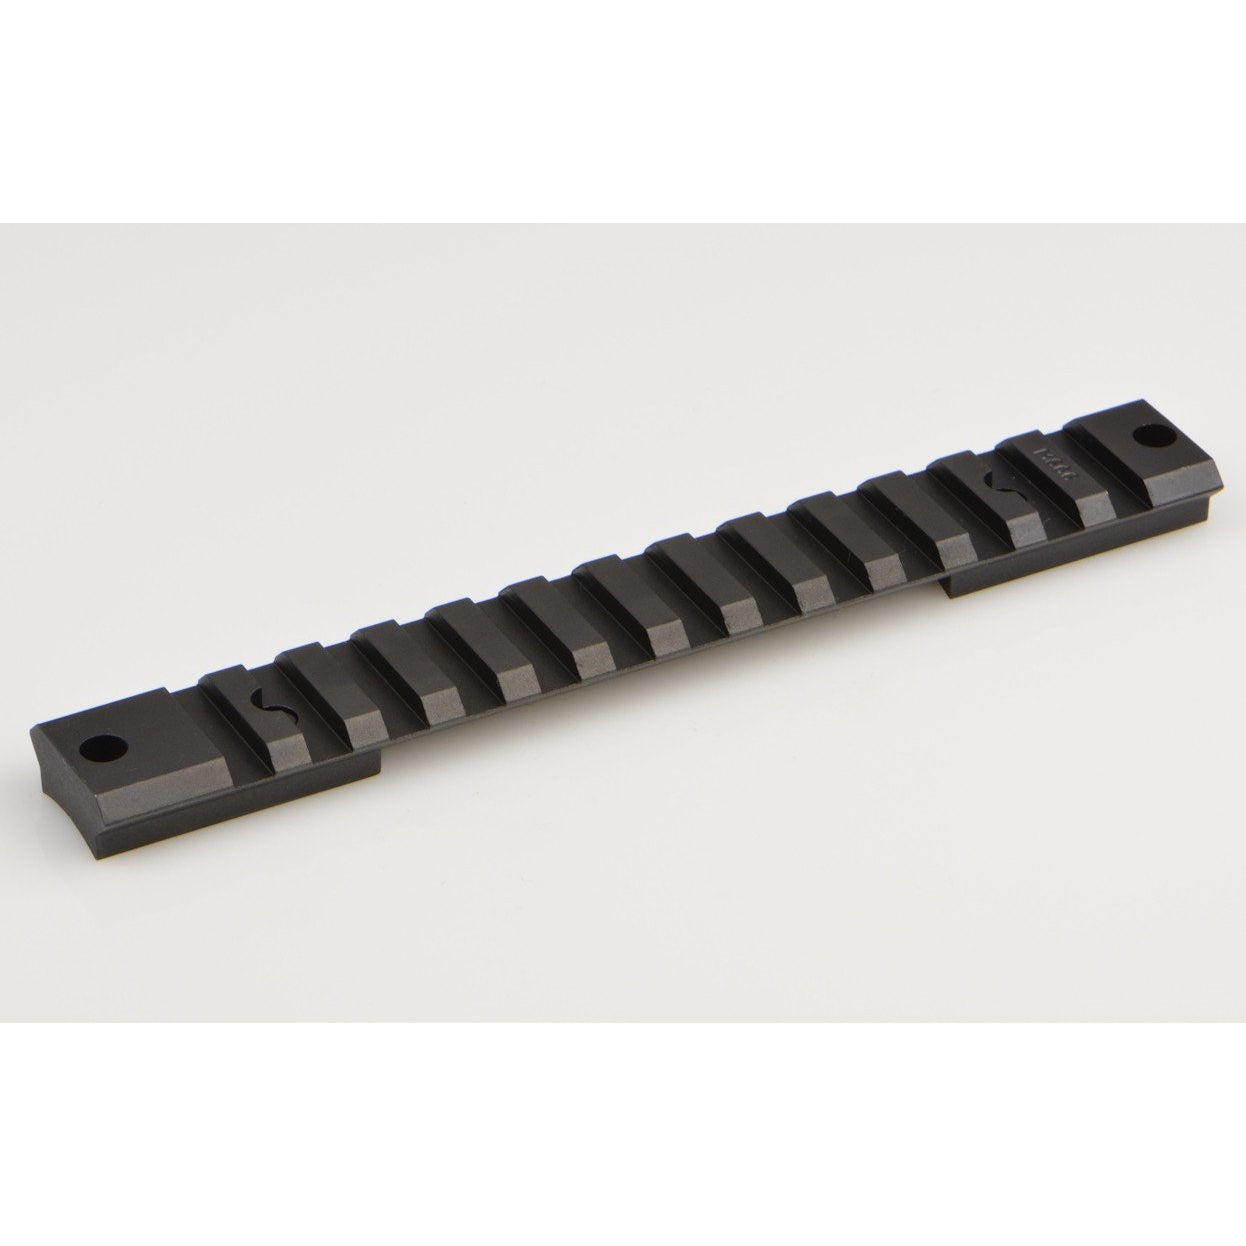 Warne Tactical Rail for Savage Short Action Tactical,Scope Mount Systems- Canada Brass